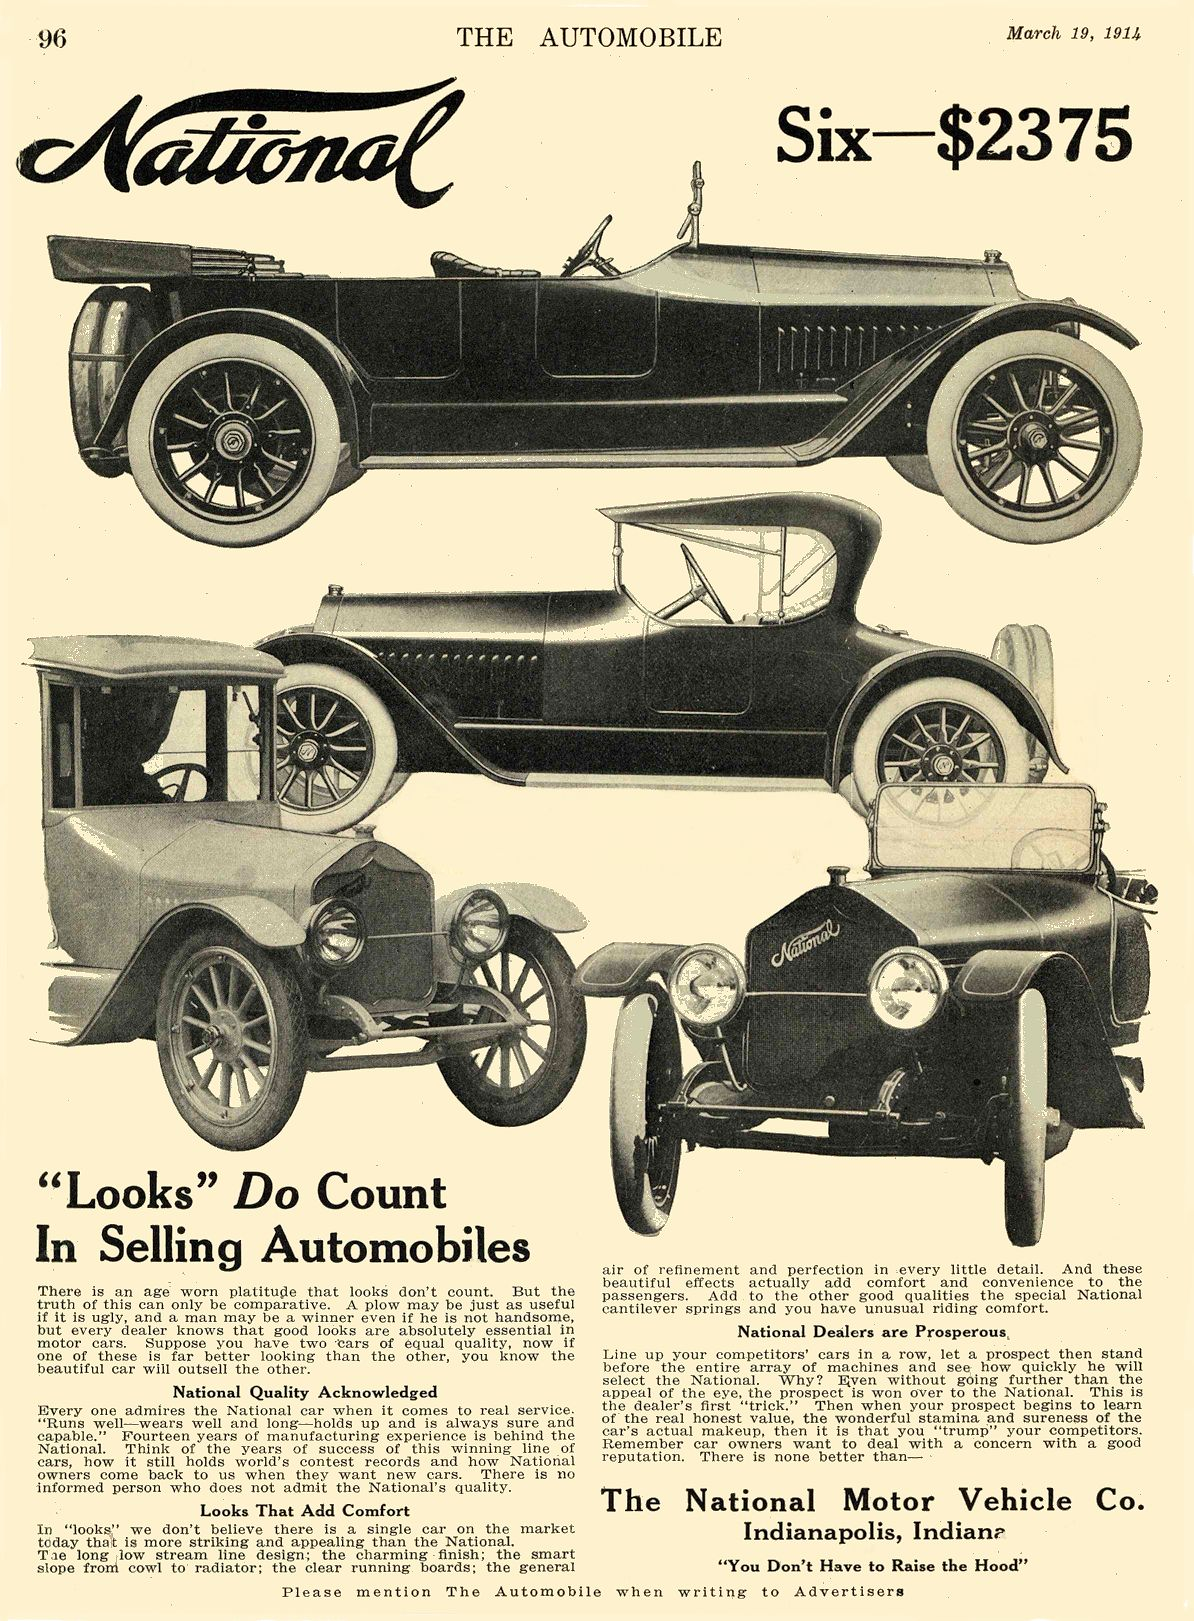 """1914 3 19 NATIONAL """"Looks"""" Do Count In Selling Automobiles National Motor Vehicle Co. Indianapolis, IND THE AUTOMOBILE March 19, 1914 7.75″x10.75″ page 96"""